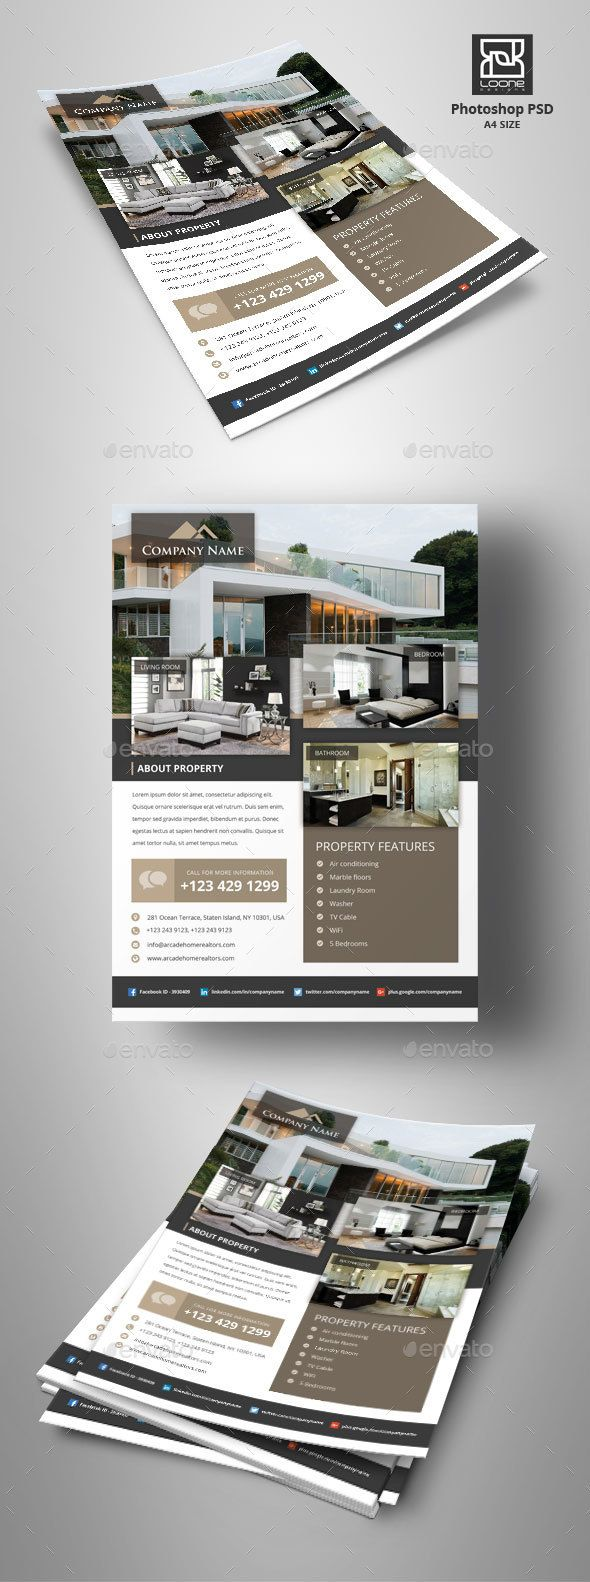 Real Estate Flyer - Corporate Flyers,#Real Estate #Flyer Download here: https://graphicriver.net/item/real-estate-flyer/20430157?ref=suz_562geid